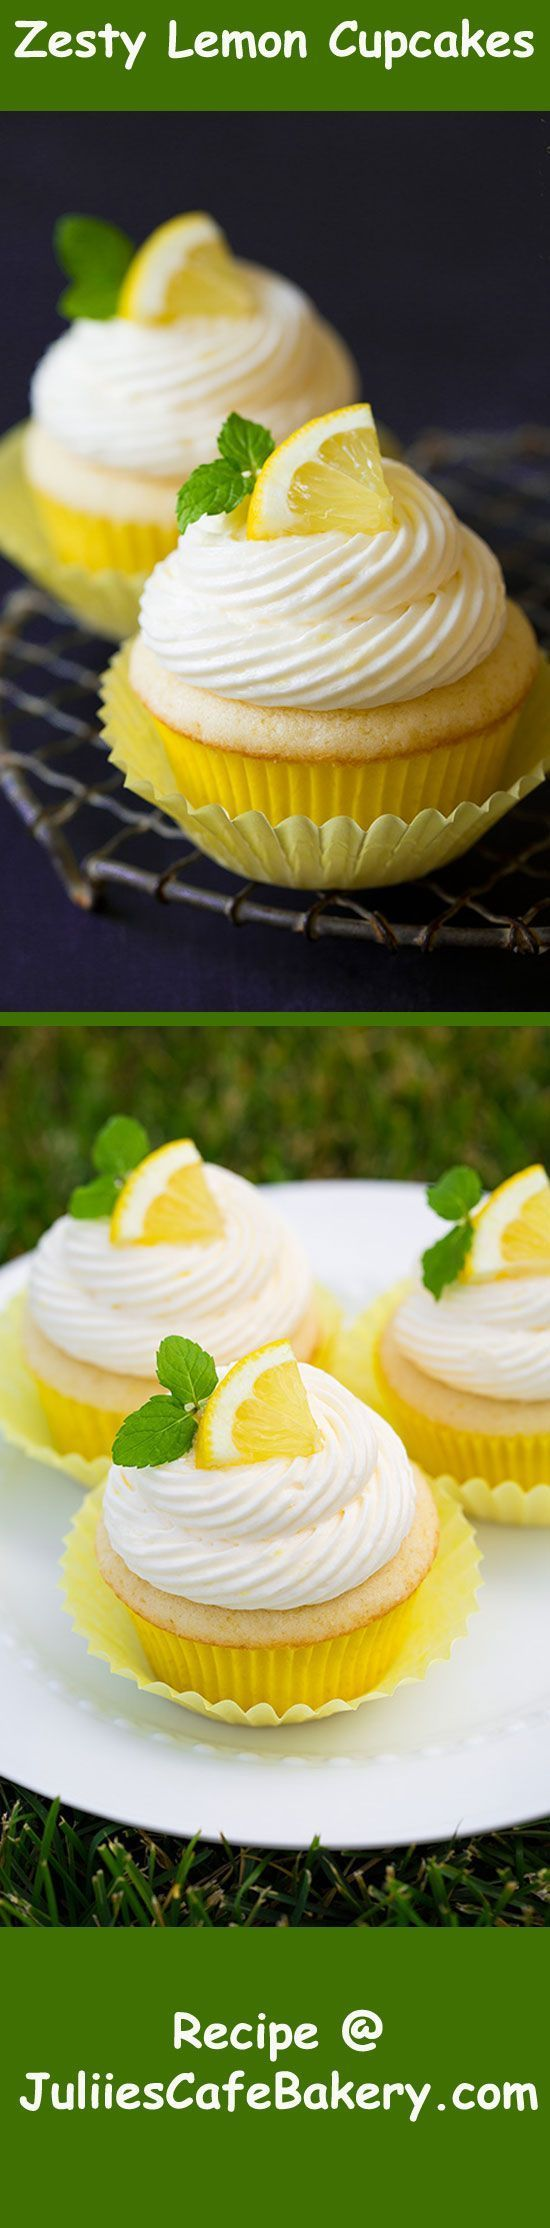 Zesty Lemon Cupcakes with Refreshing Lemon Buttercream Frosting #lemonbuttercream Zesty Lemon Cupcakes with Refreshing Lemon Buttercream Frosting recipe @ juliescafebakery.com #lemonbuttercream Zesty Lemon Cupcakes with Refreshing Lemon Buttercream Frosting #lemonbuttercream Zesty Lemon Cupcakes with Refreshing Lemon Buttercream Frosting recipe @ juliescafebakery.com #lemonbuttercream